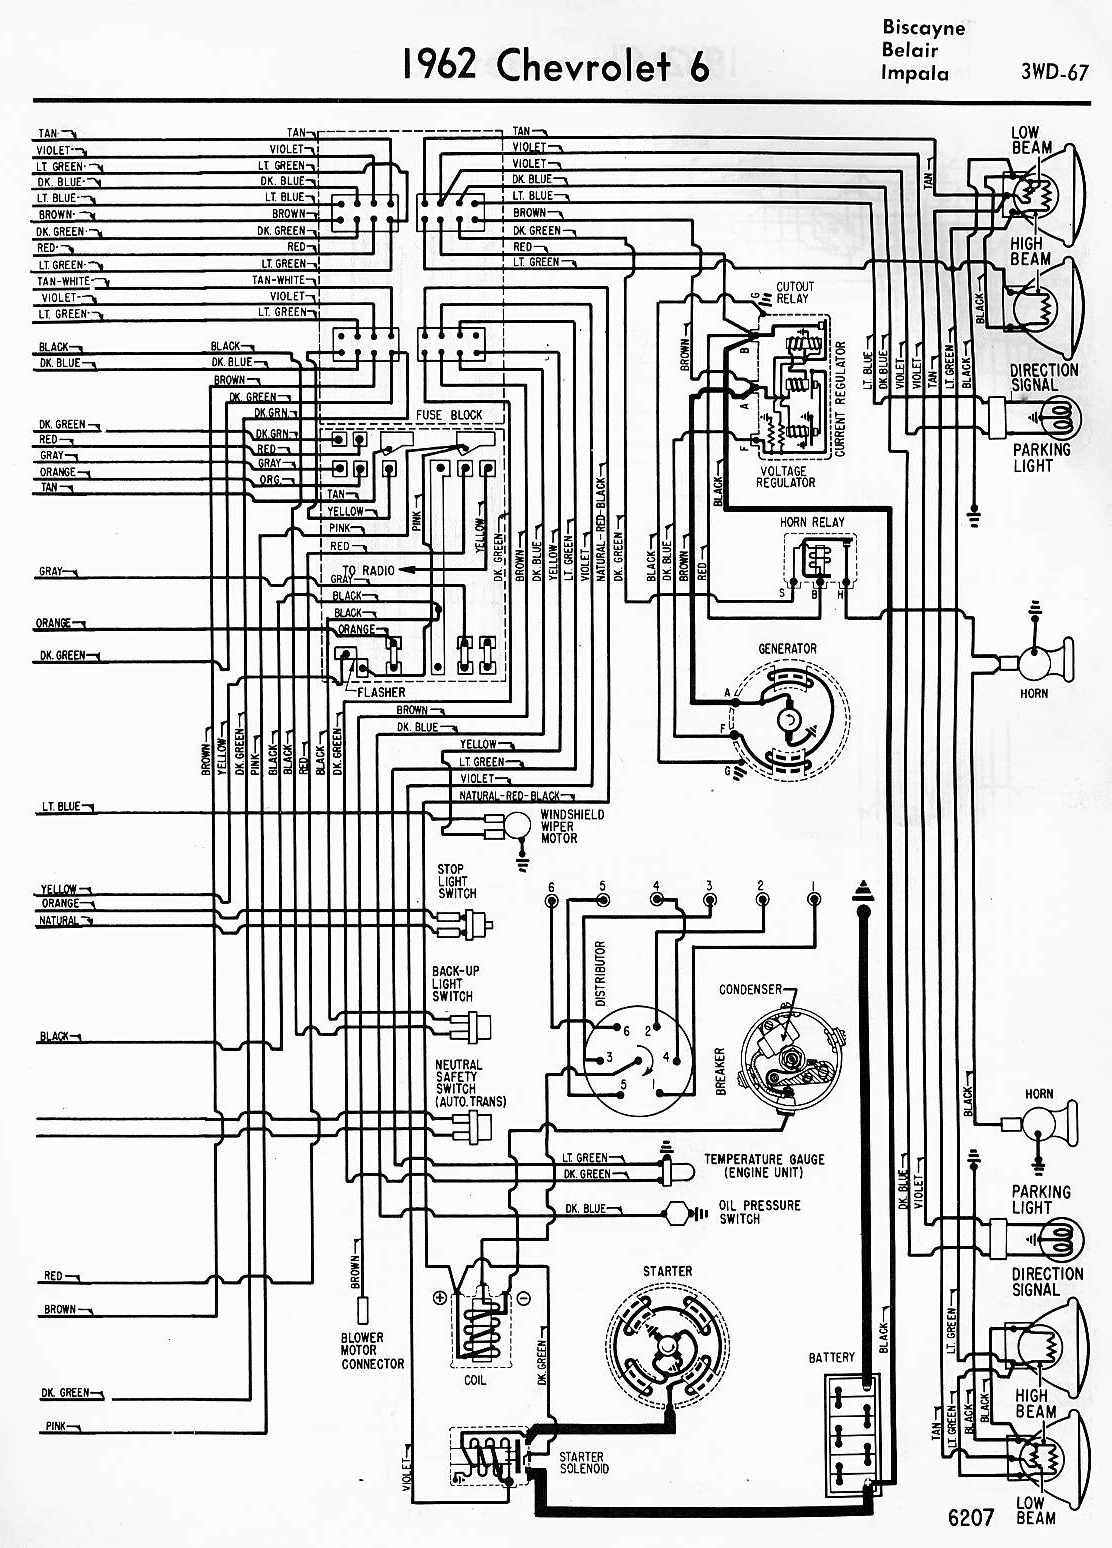 67 Chevelle Amp Gauge Wiring Diagram - Miql.bbzbrighton.uk • on 67 camaro wiring diagram pdf, 68 camaro wiring diagram pdf, 69 camaro wiring diagram pdf,